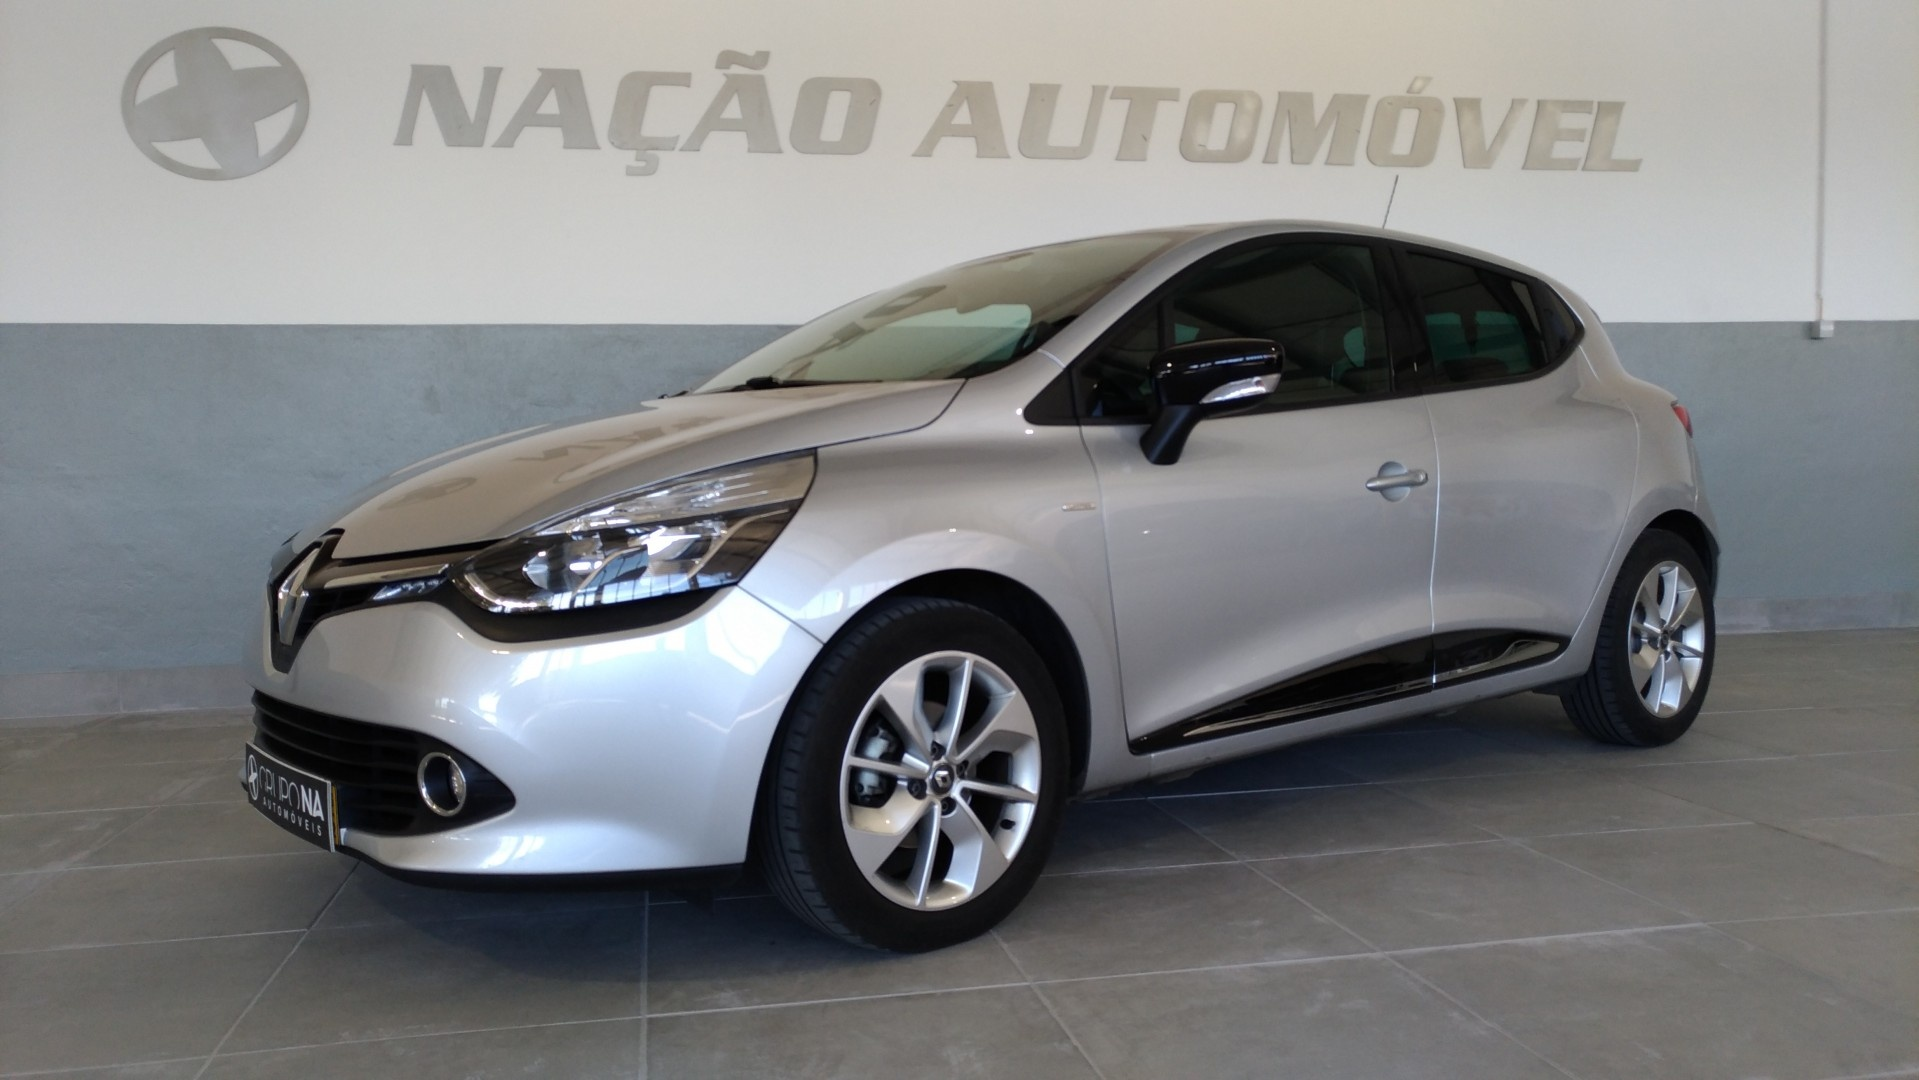 Renault Clio IV 1.5 Dci 90cv Energy 82g/km CO2 S. & S. Lmited Gps Plus 5 portas